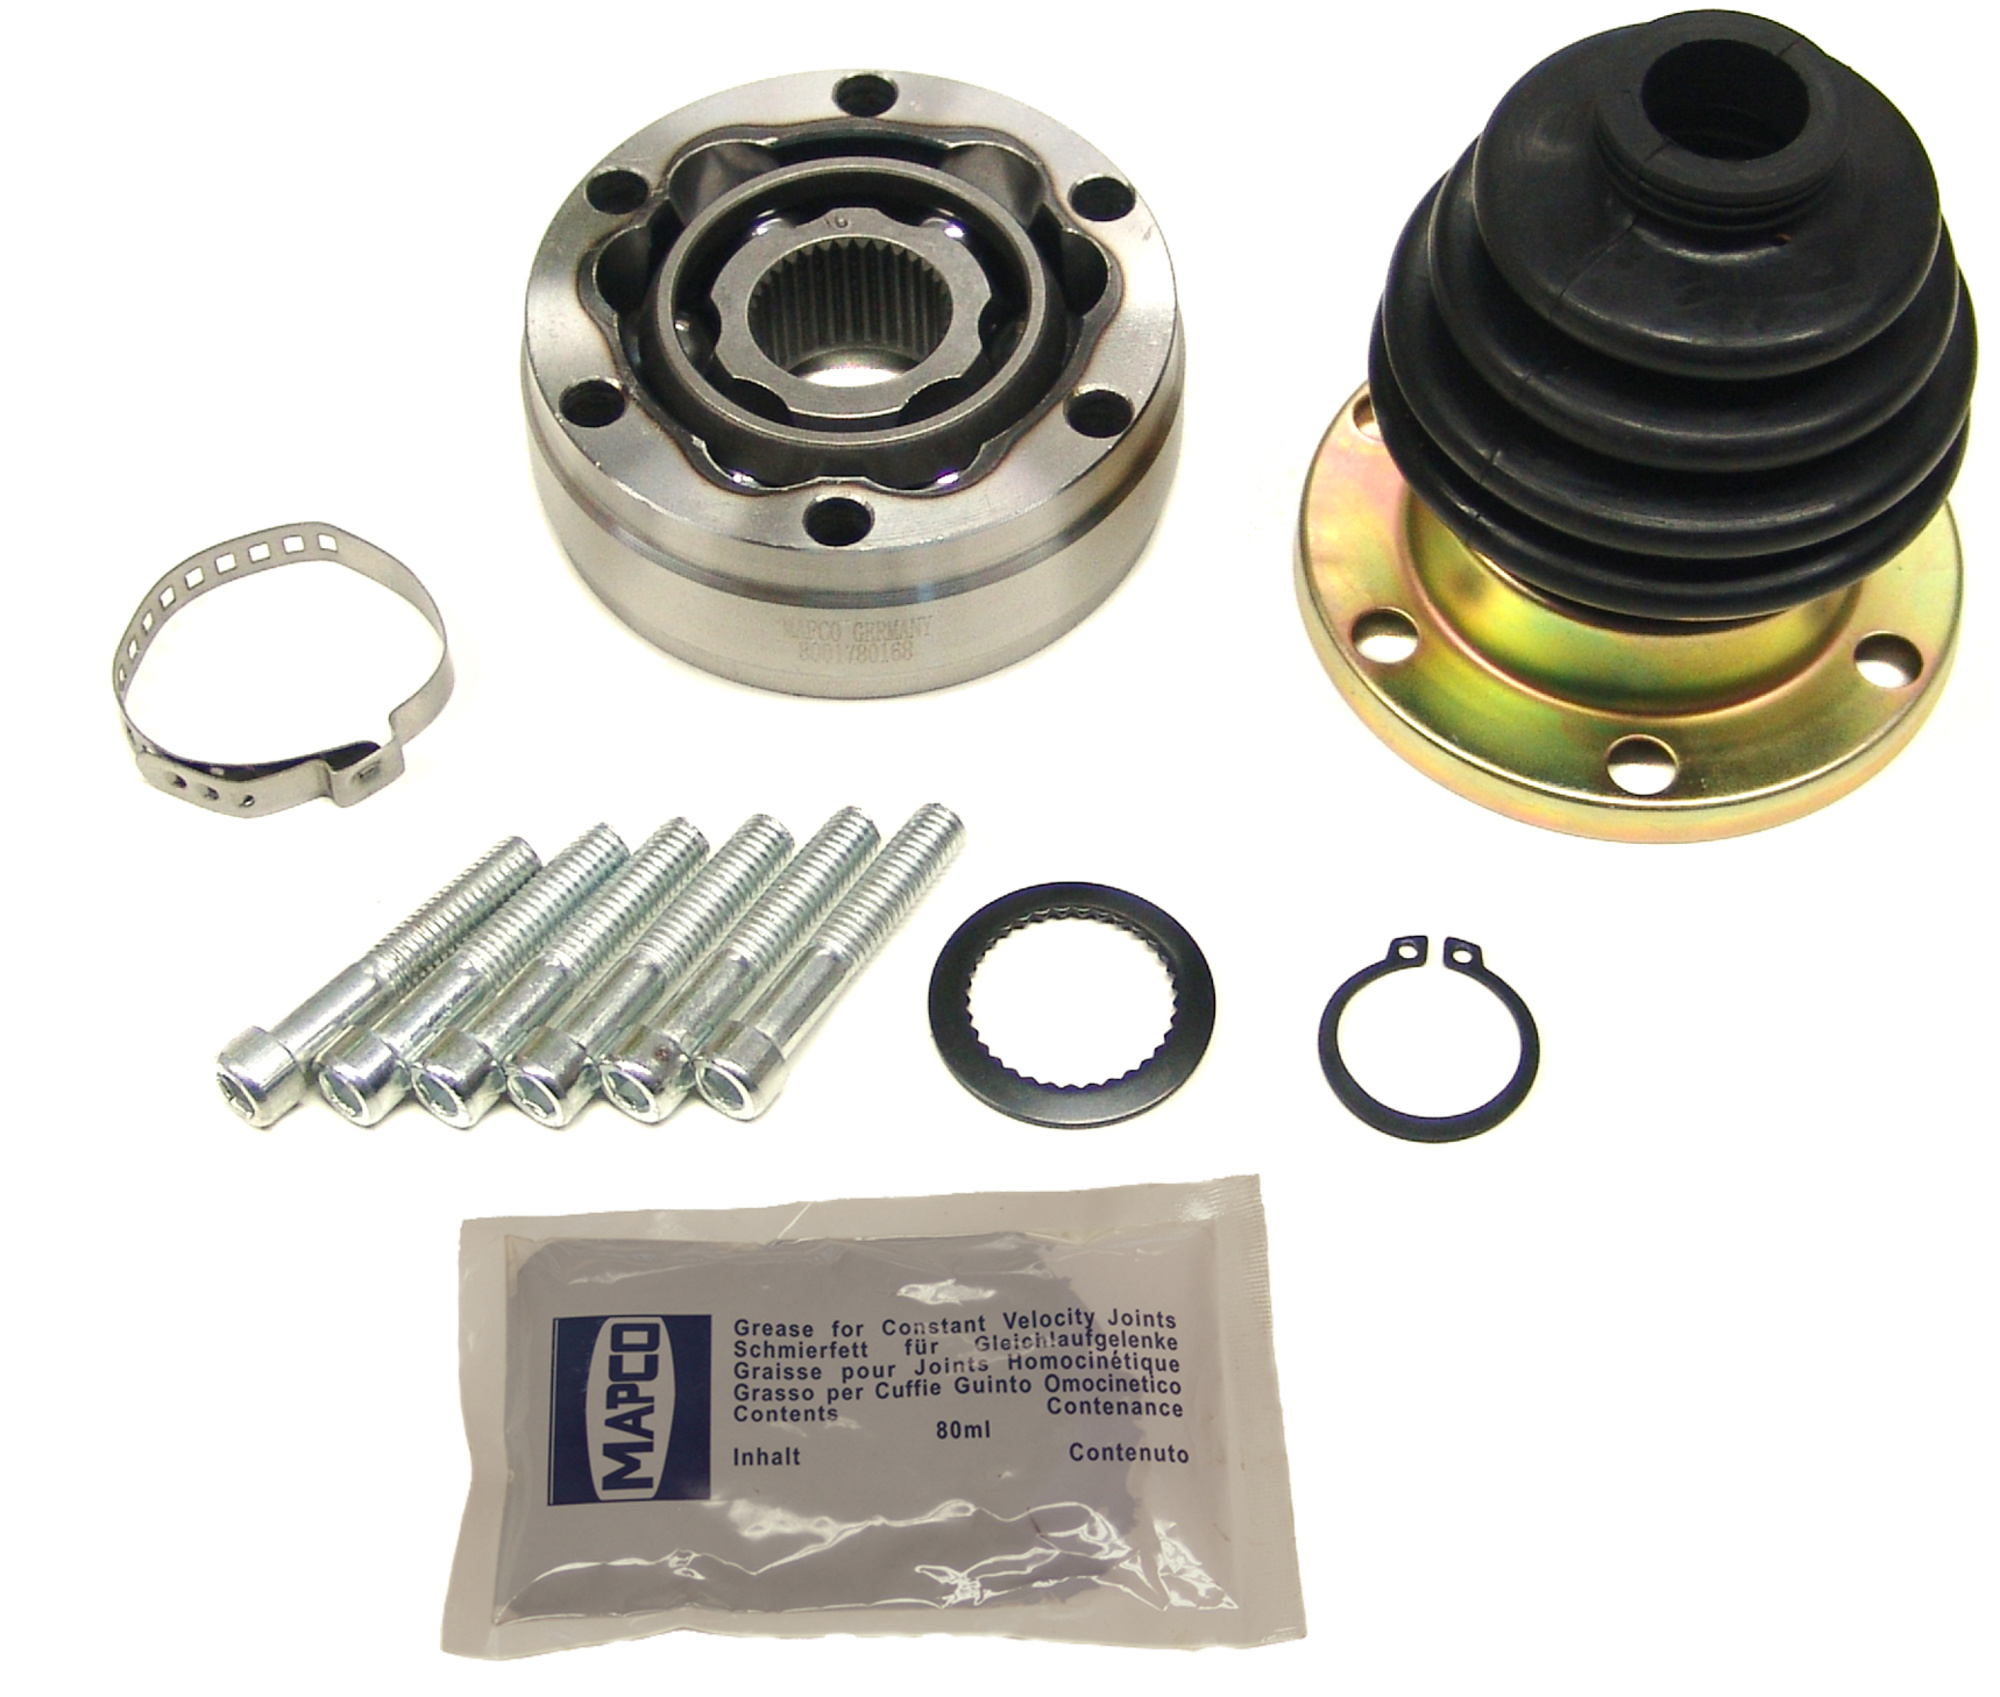 CITROEN AX 1.1 PETROL INNER DRIVESHAFT BOOTKIT CV JOINT BOOT KIT 86/>97